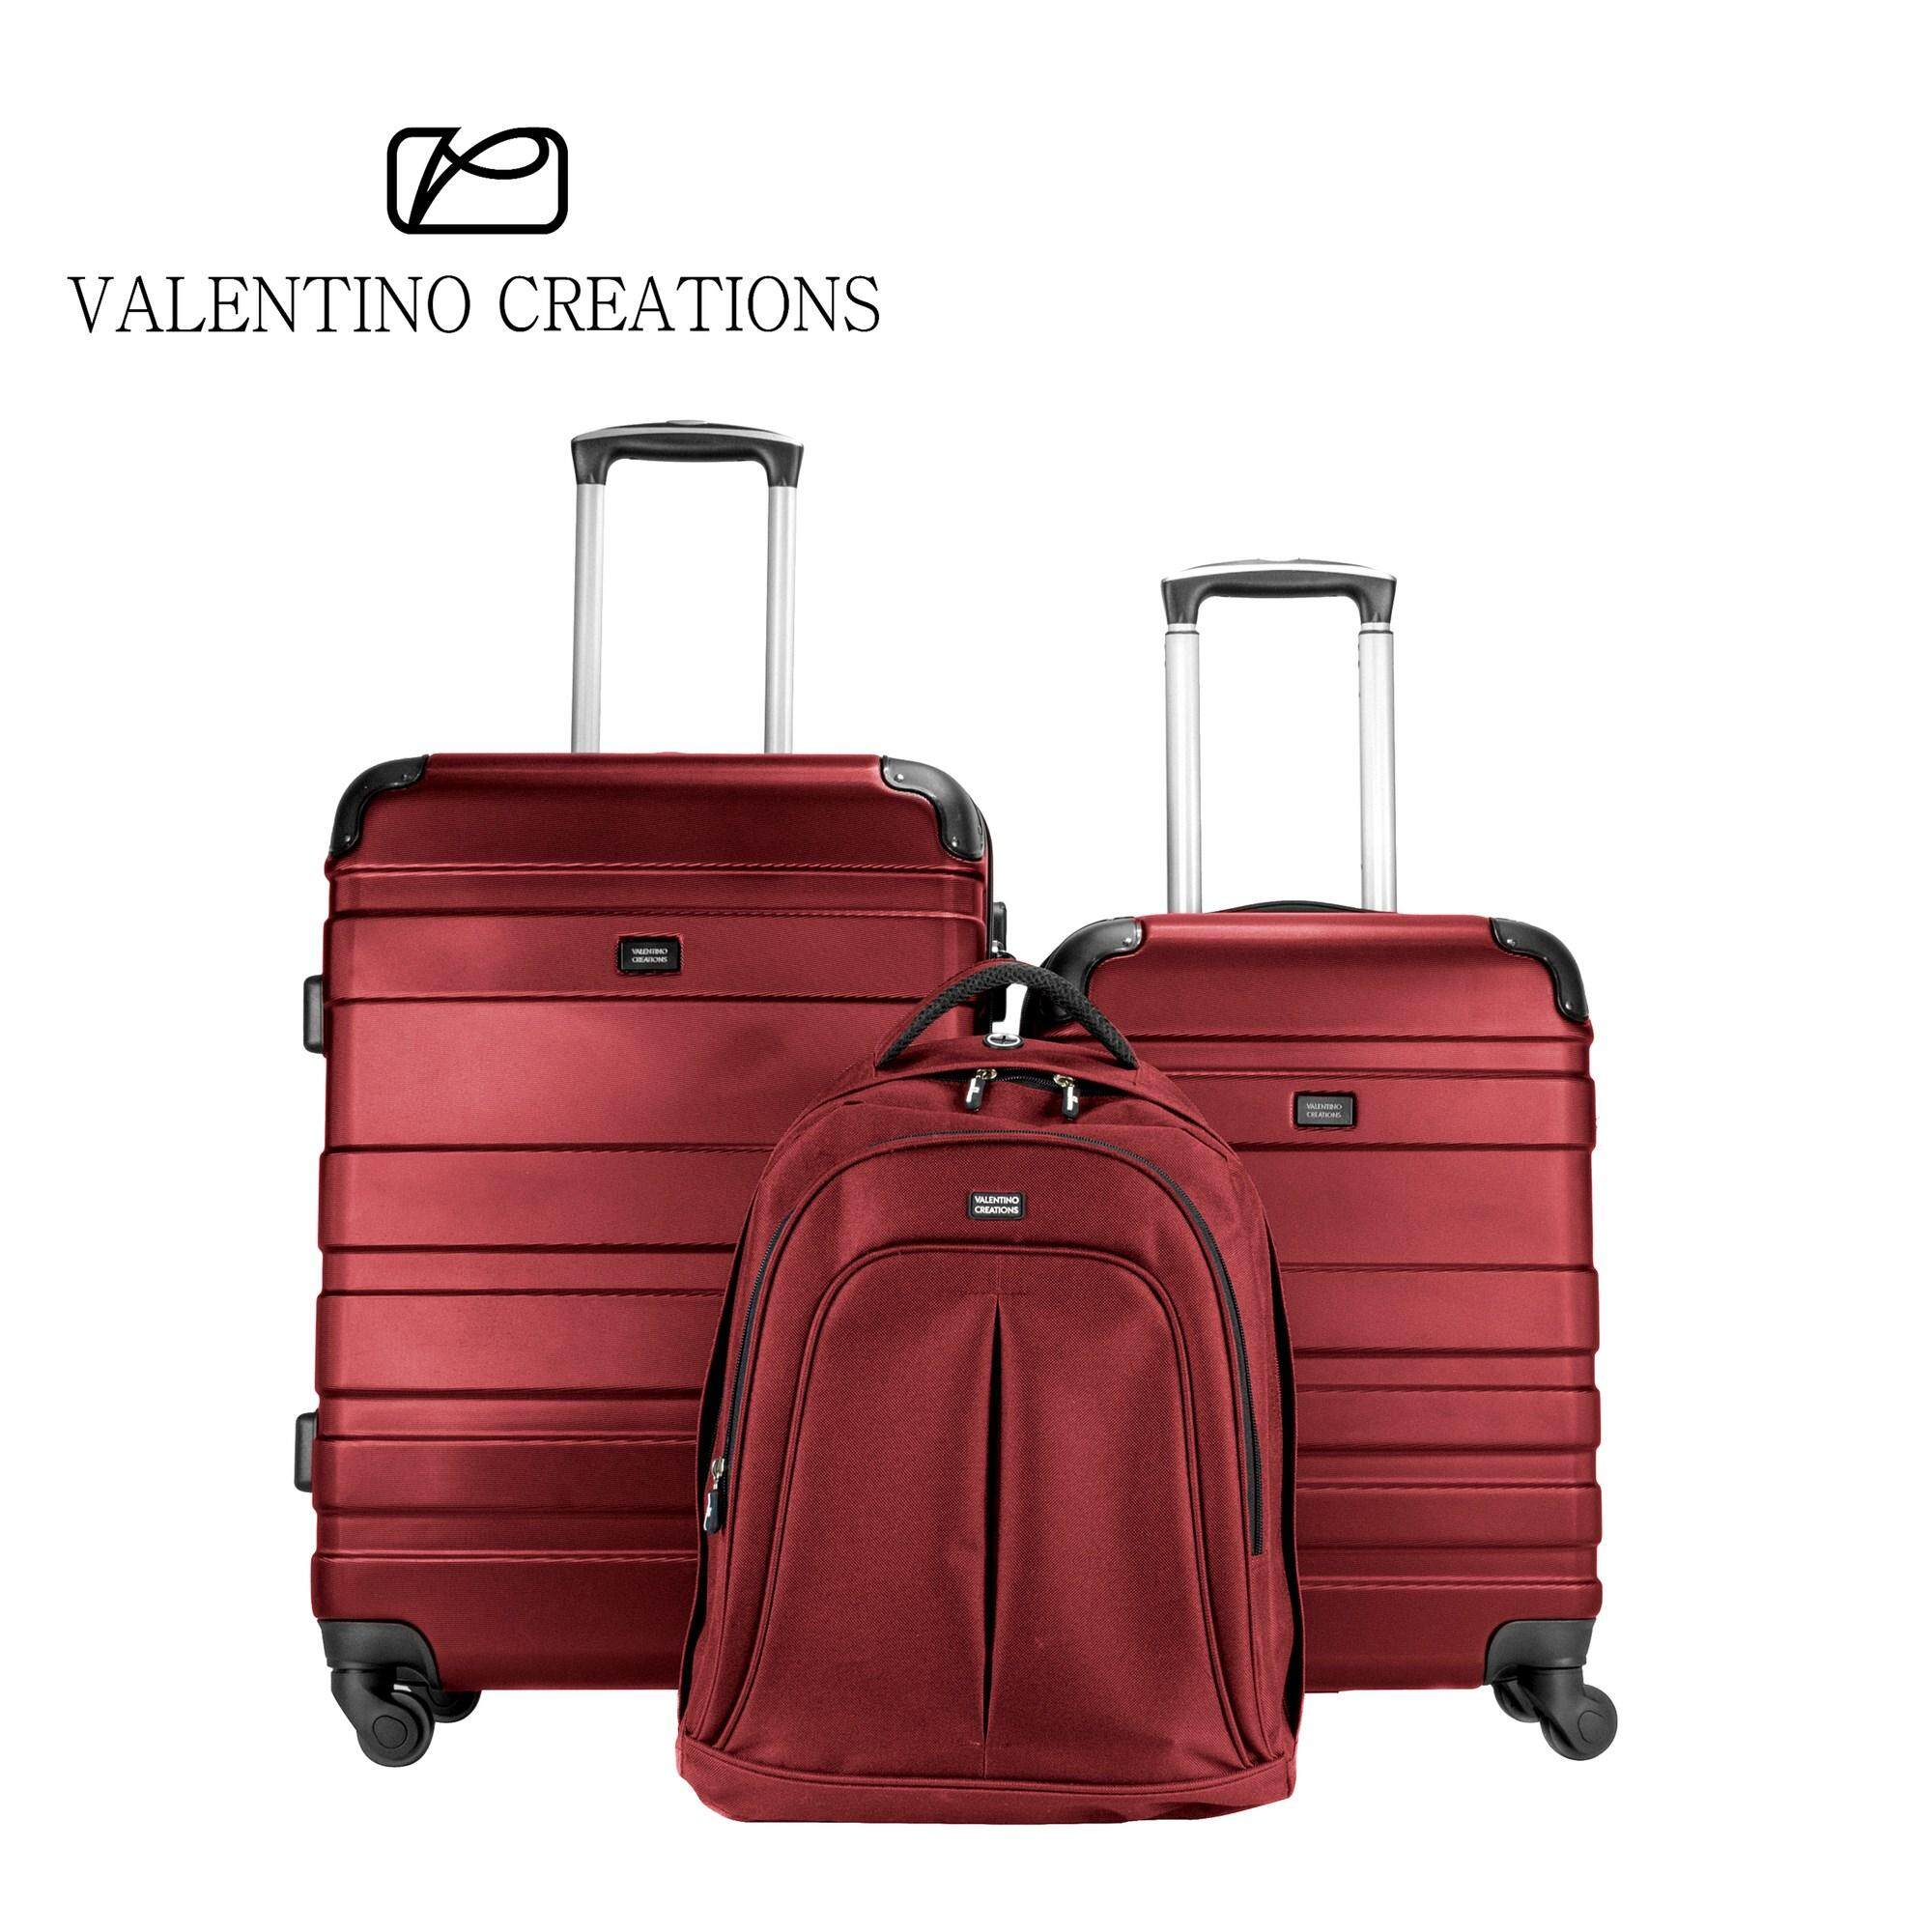 """Valentino Creations Bobcat III 2-In-1 Luggage Set (20""""+24"""") + Free Backpack (Limited Quantity)"""